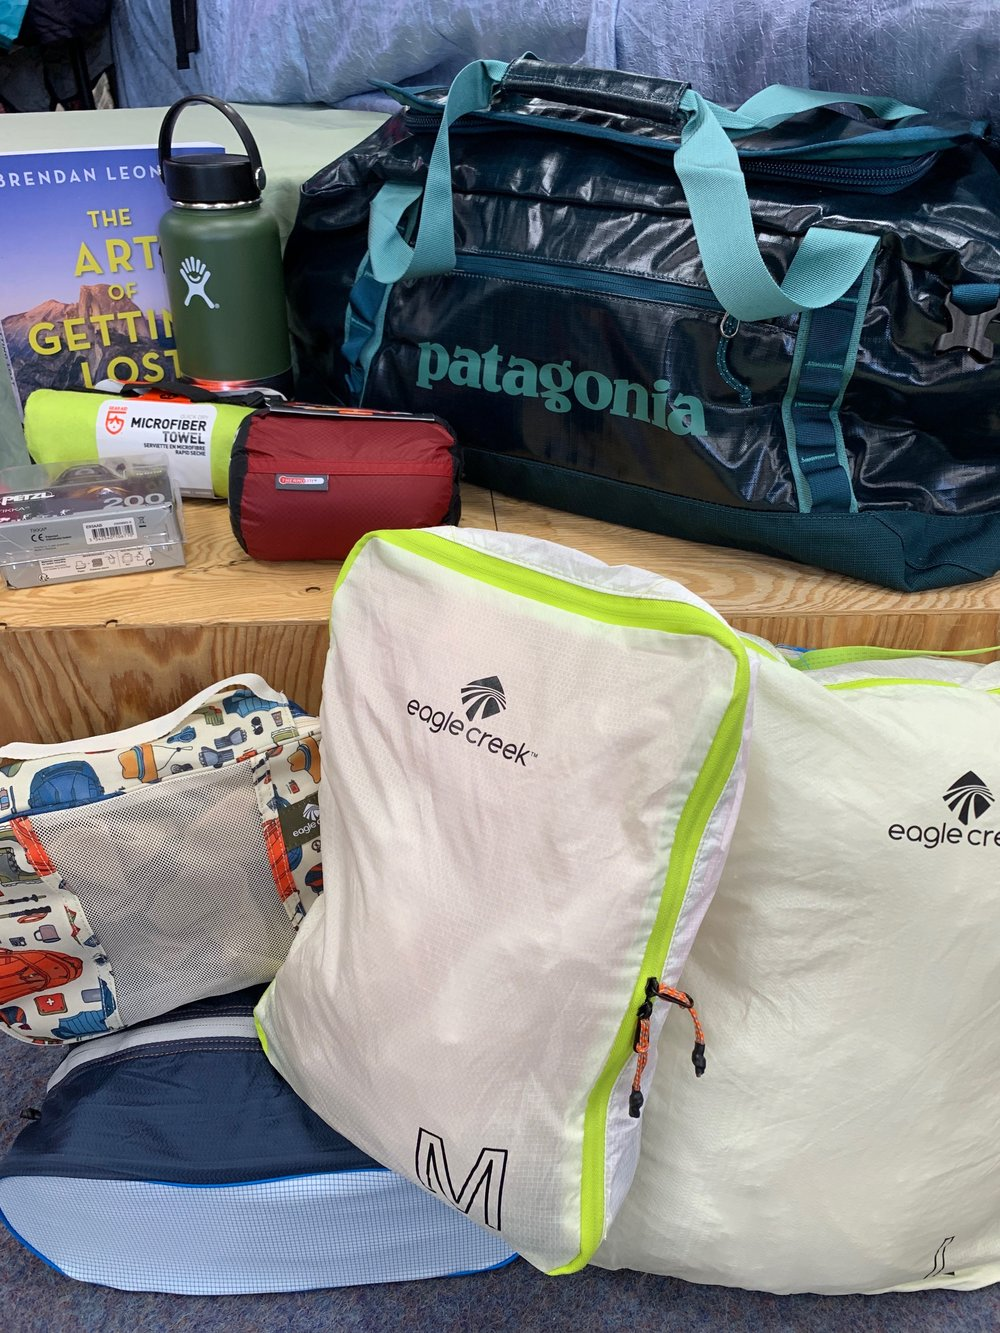 RAFFLE PRIZE #2 - Adventure Travel - Patagonia Black Hole 60L Duffel: $129Eagle Creek Pack-It Sacks: $100Sea to Summit Reactor Liner: $65Hydroflask 32oz. Insulated Bottle: $40Petzl Tikka Headlamp: $30The Art of Getting Lost by Brendan Leonard: $26Gear Aid Camp Towel XL: $25Total Approximate Retail Value: $390